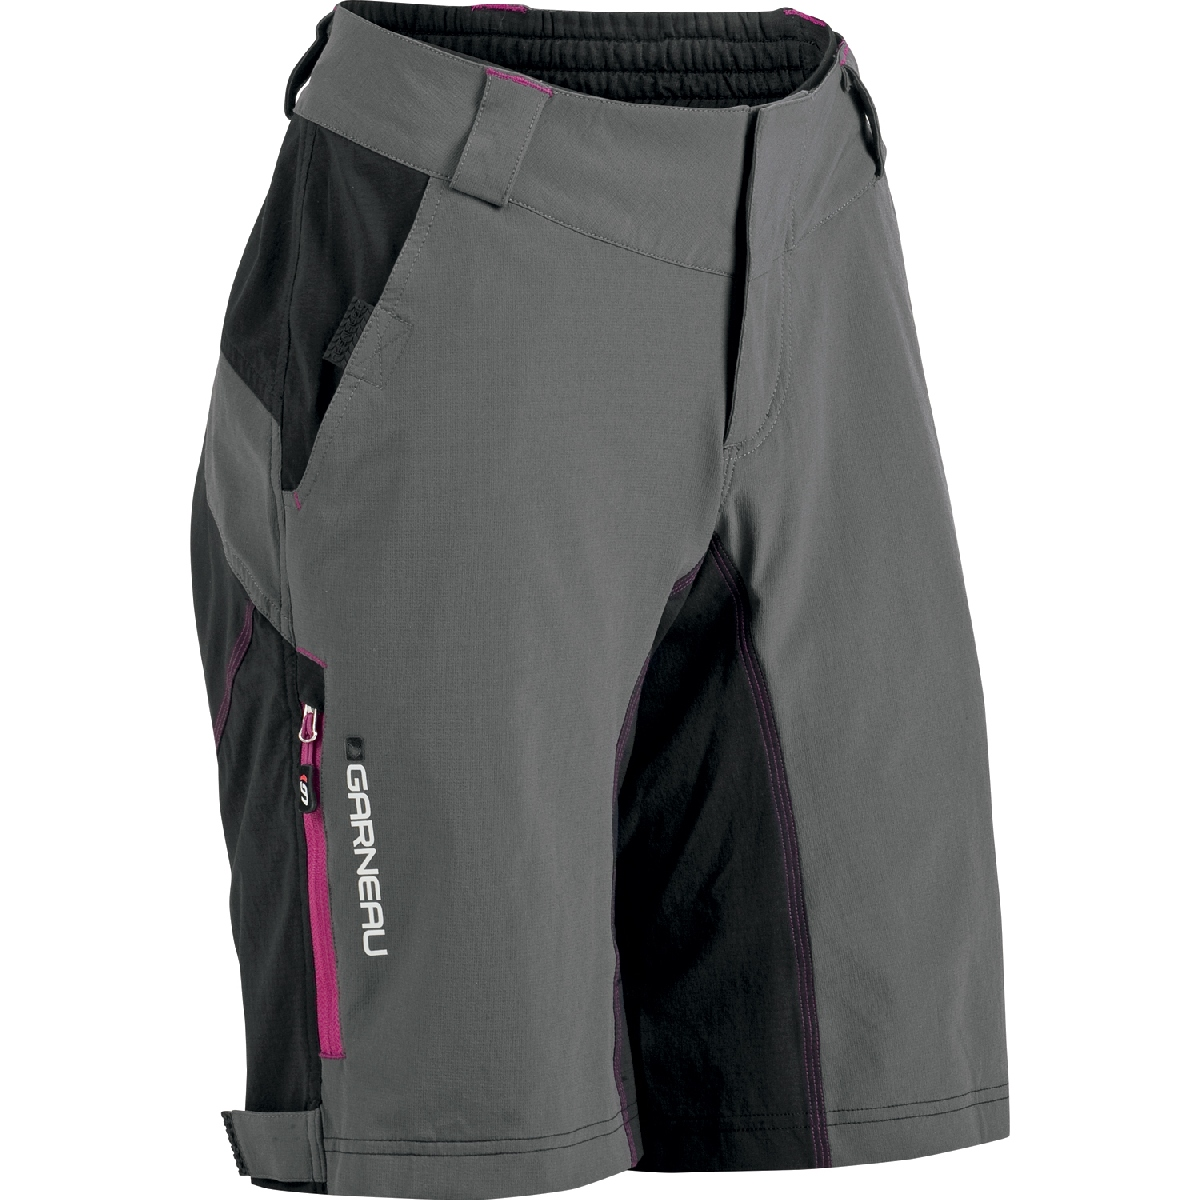 Louis Garneau Zappa MTB Shell Cycling Short Women's Size S Black Grey U.S.A. & Canada